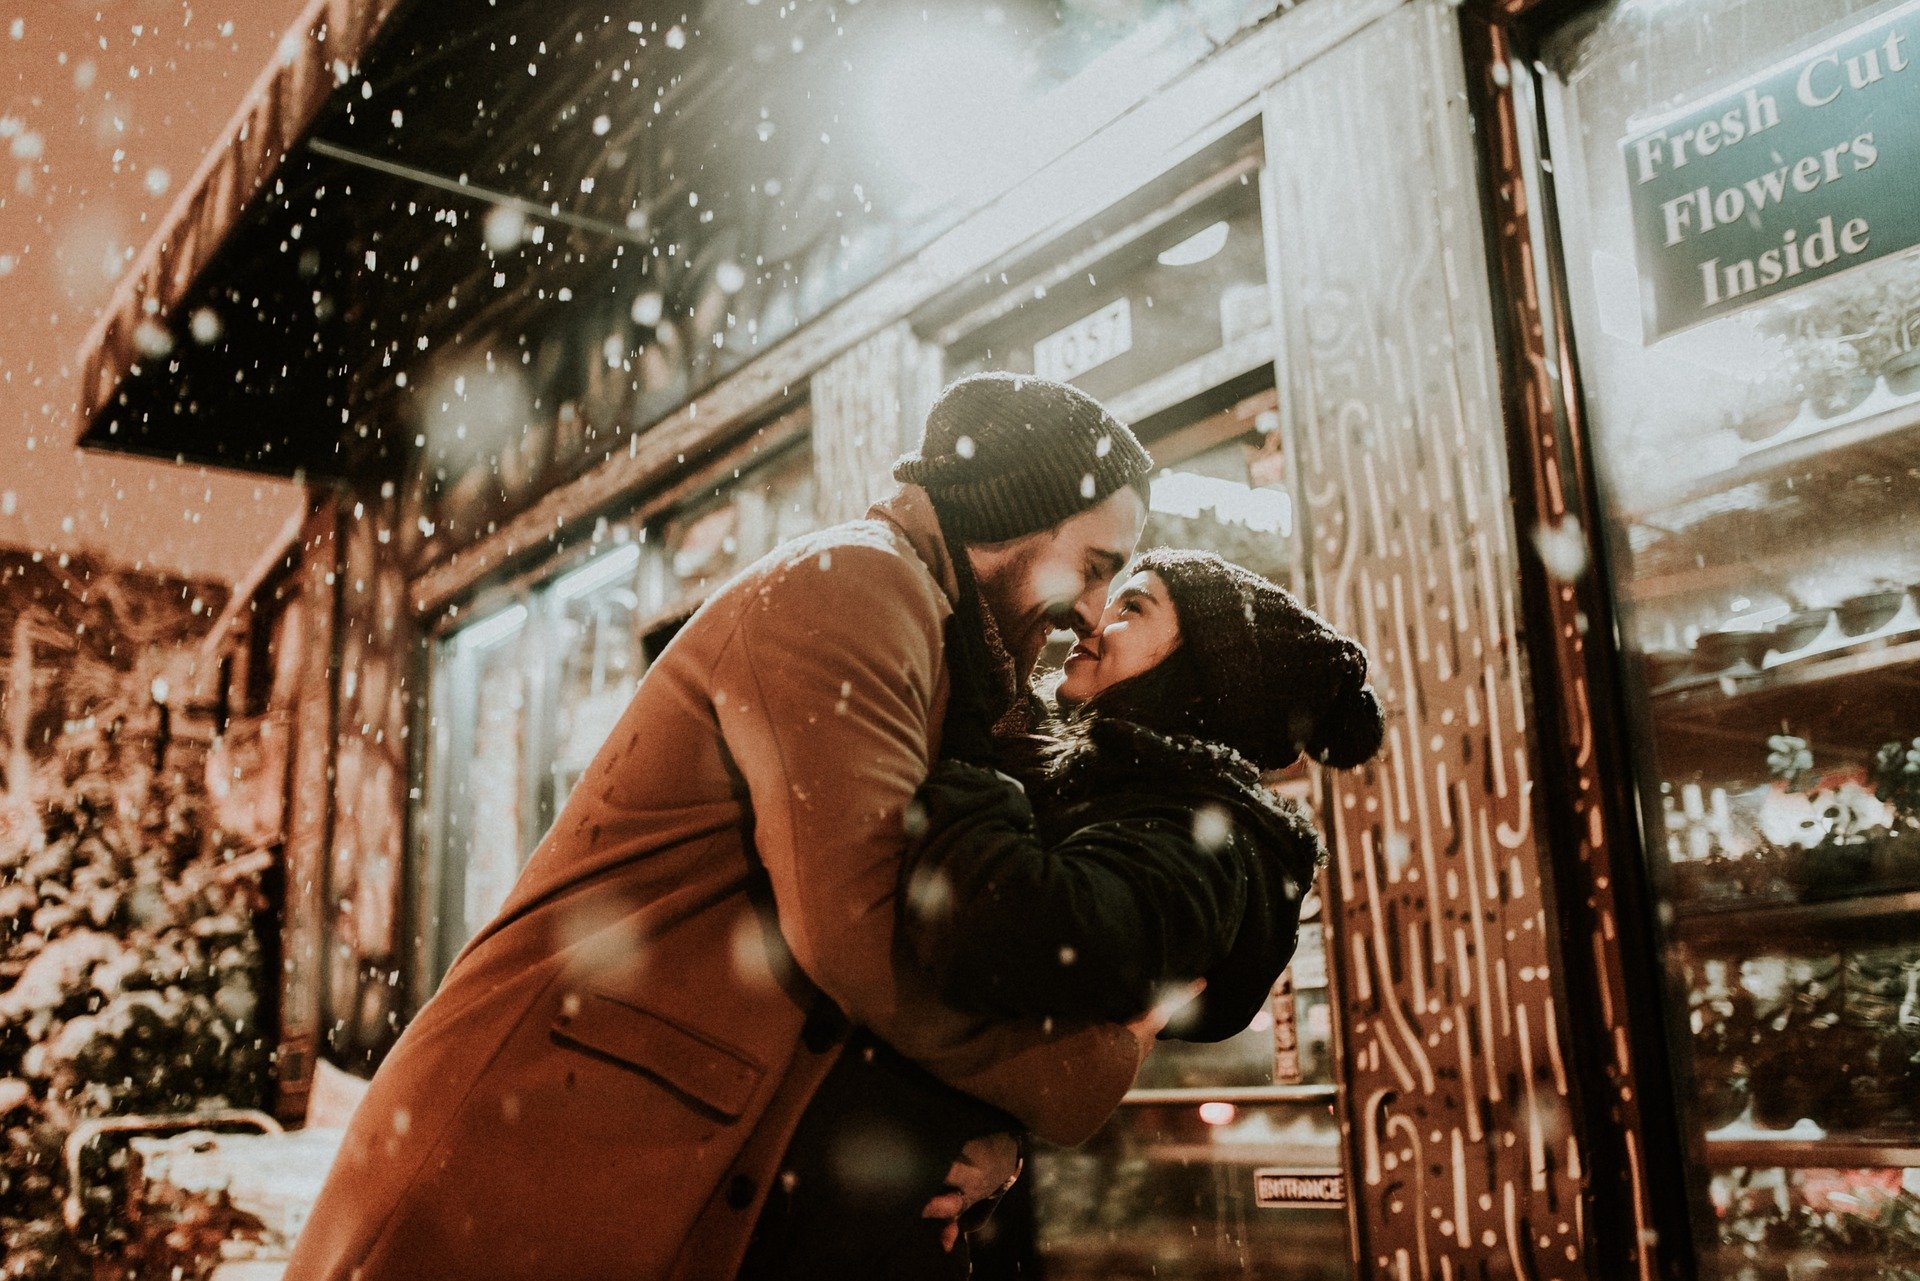 Couple kissing in winter